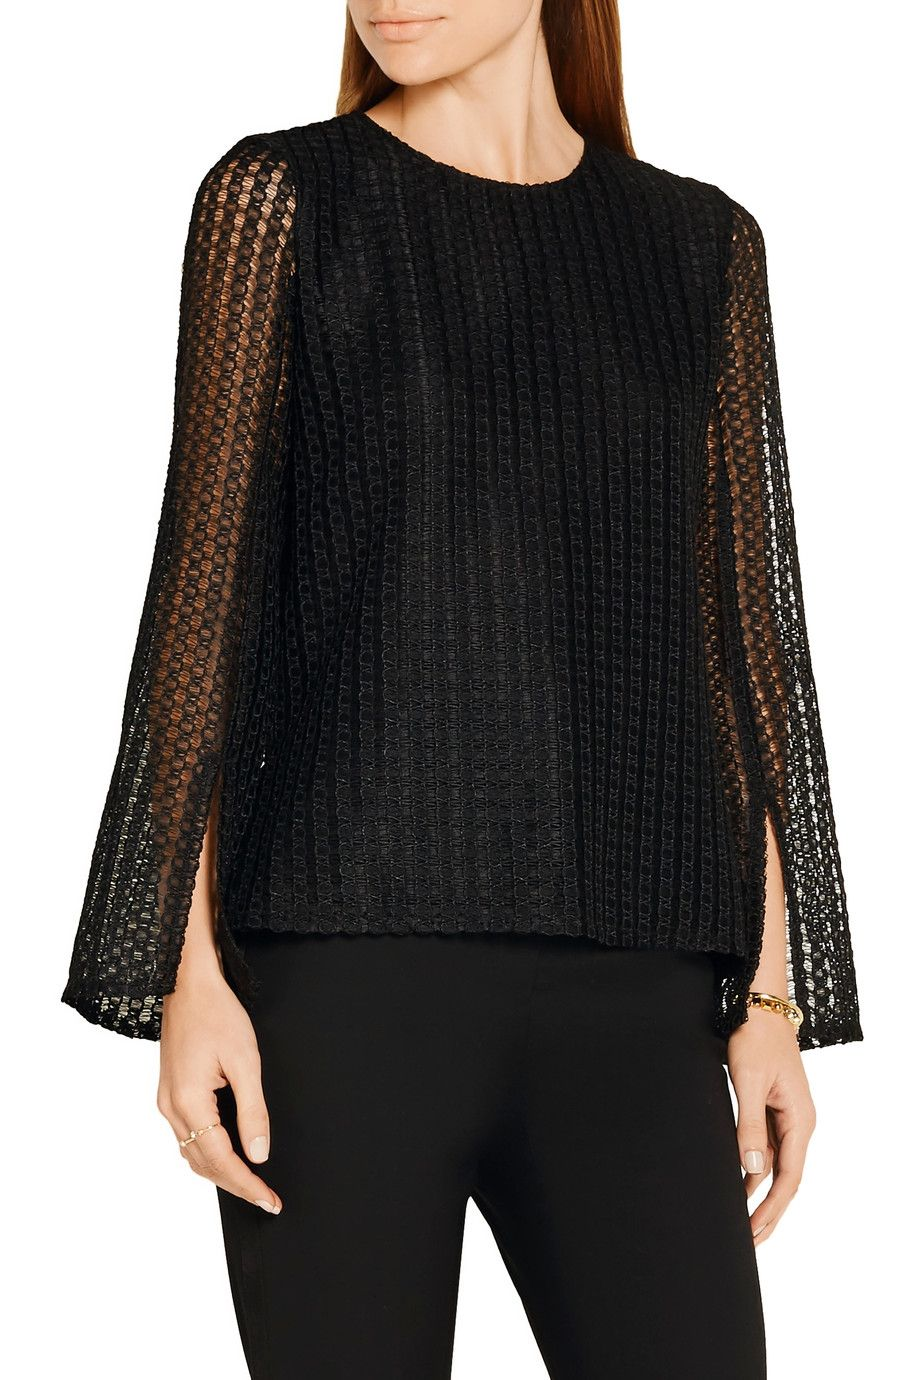 Shop on-sale Adam Lippes Macramé lace top. Browse other discount designer  Tops &